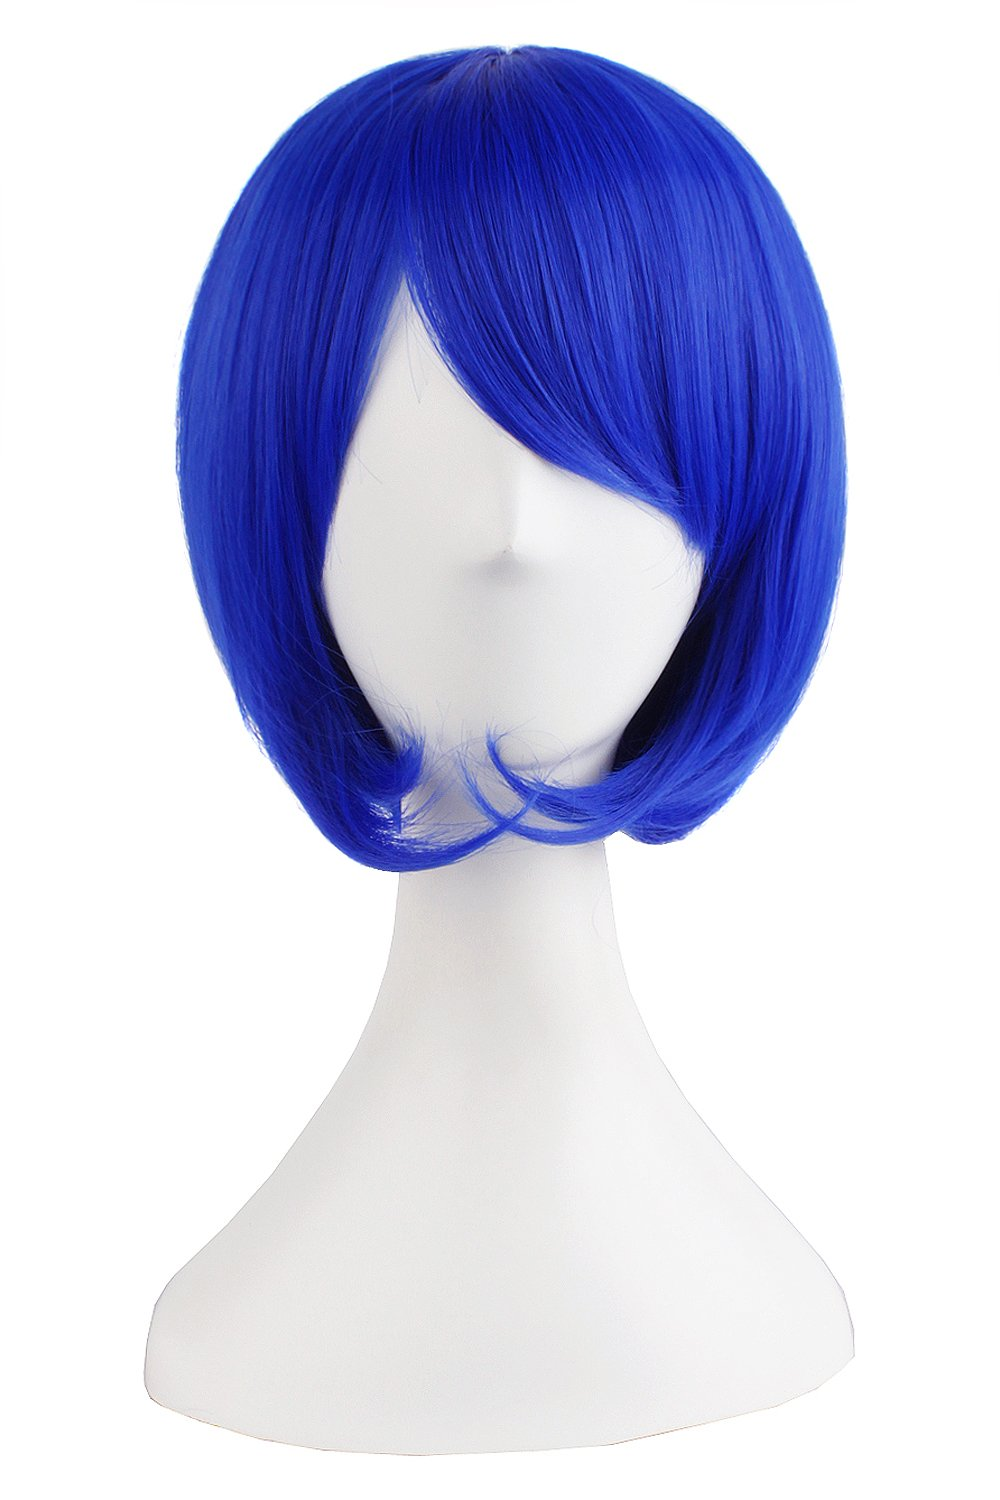 MapofBeauty Fashion Girl Natural Short Straight Wigs Diagonal Bangs Wigs-Navy Blue-Ladies by MapofBeauty (Image #1)